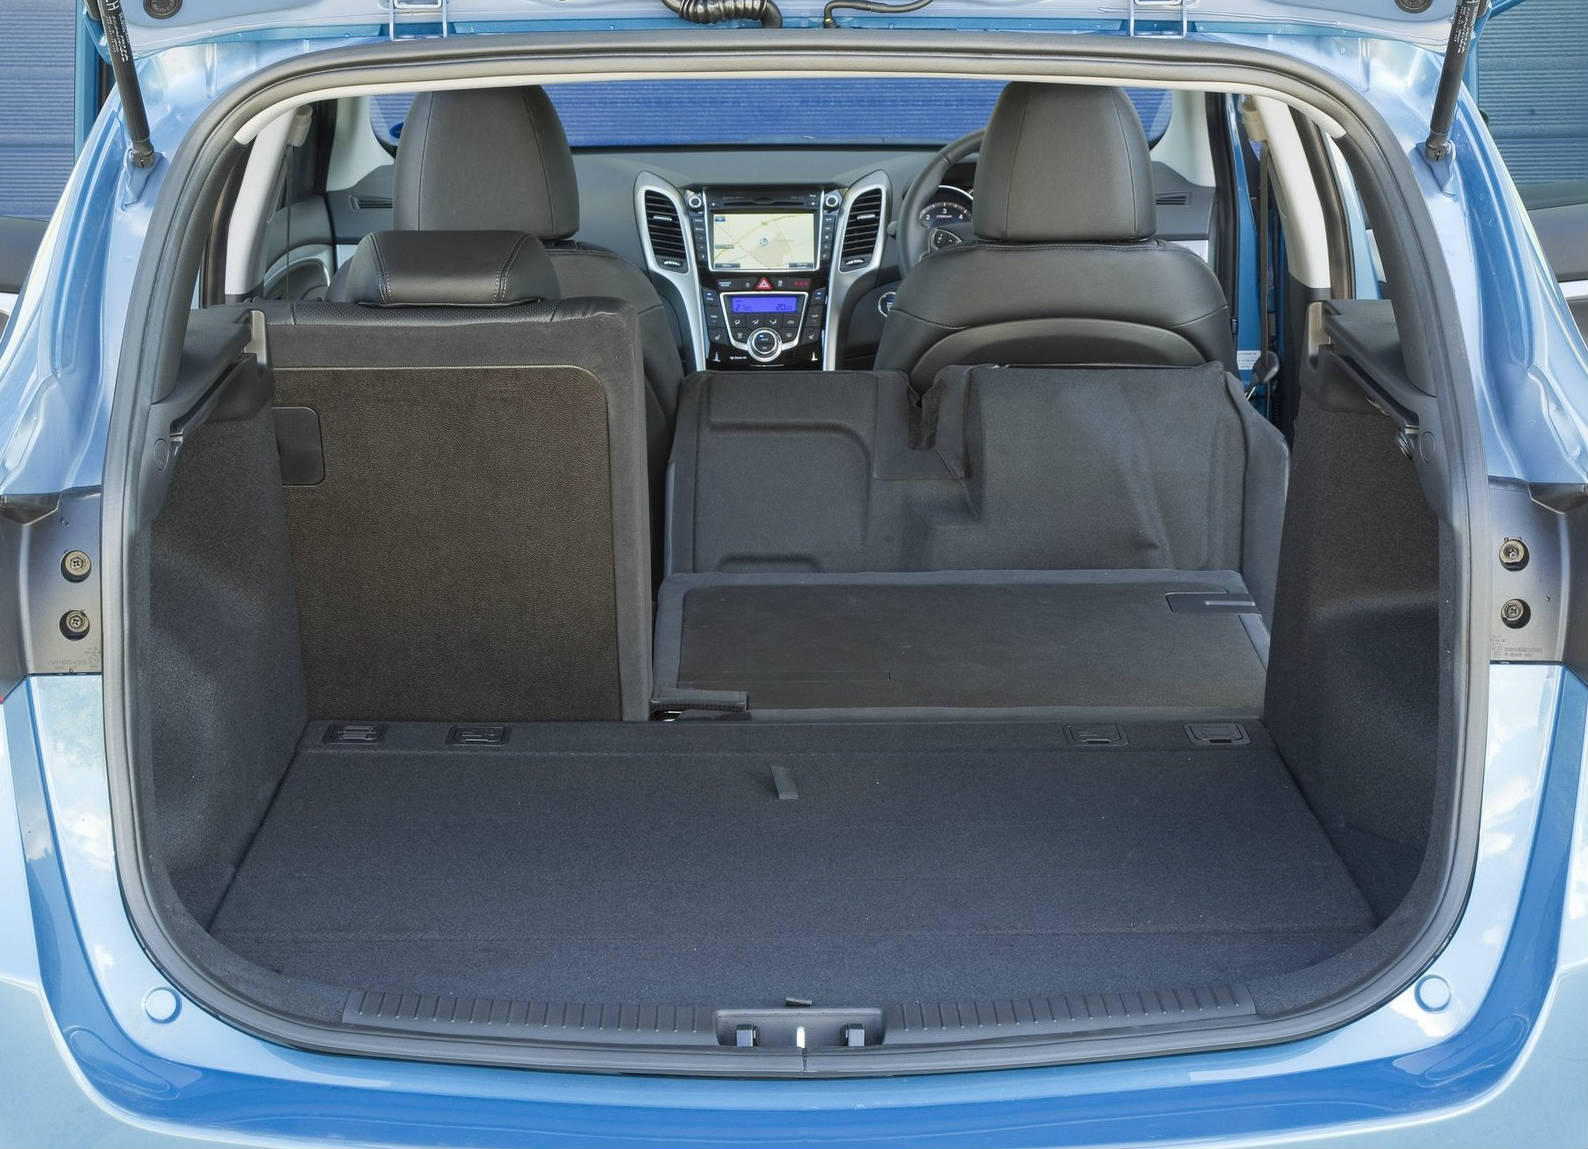 Hyundai I30 Wagon Interieur Hyundai I30 Wagon Review Exceptional Comfort Stylish Design